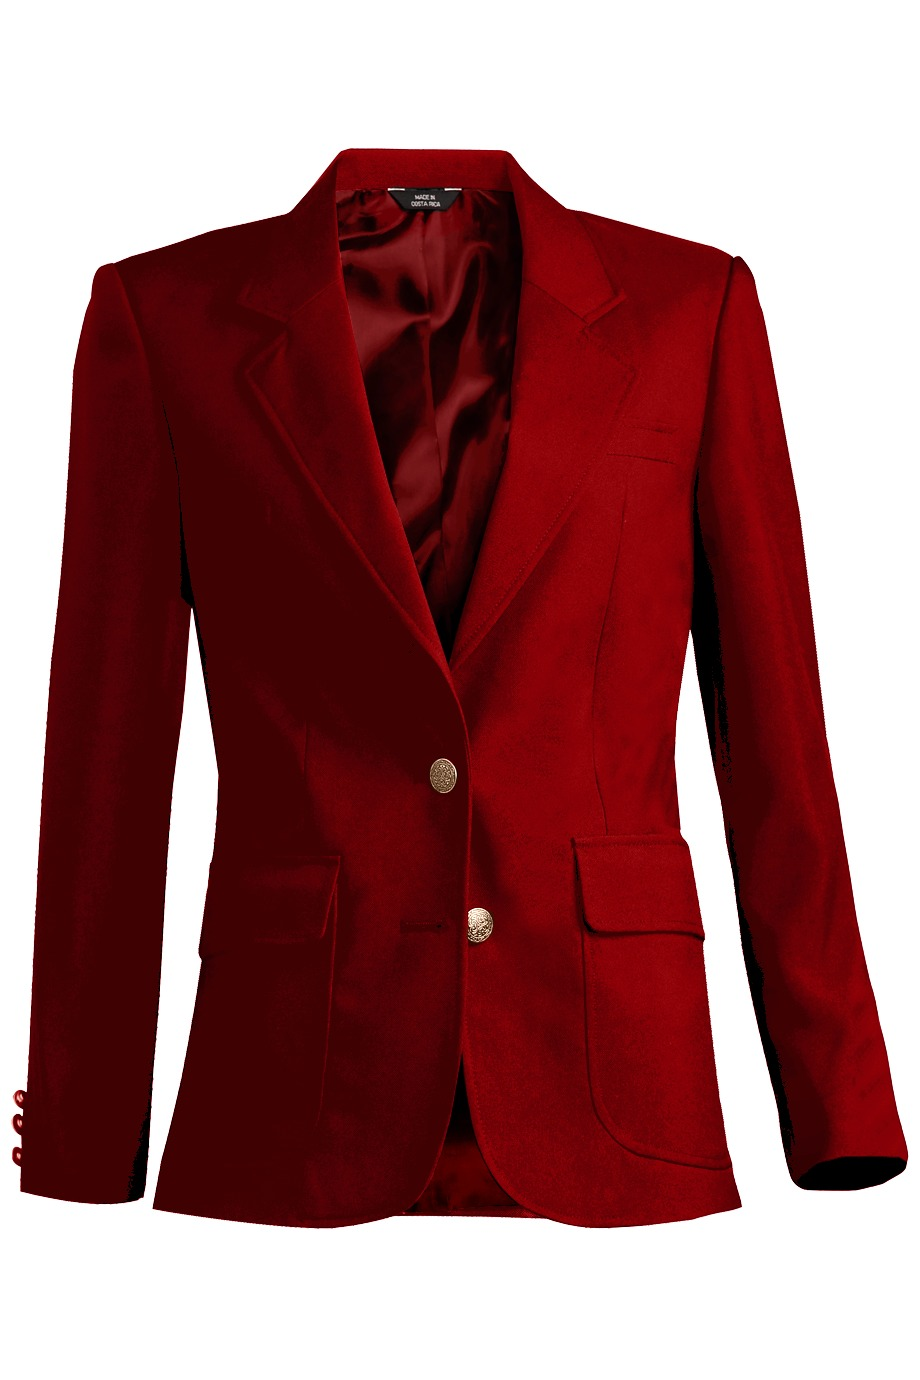 Edwards Garment 6500 - Women's Polyester Blazer